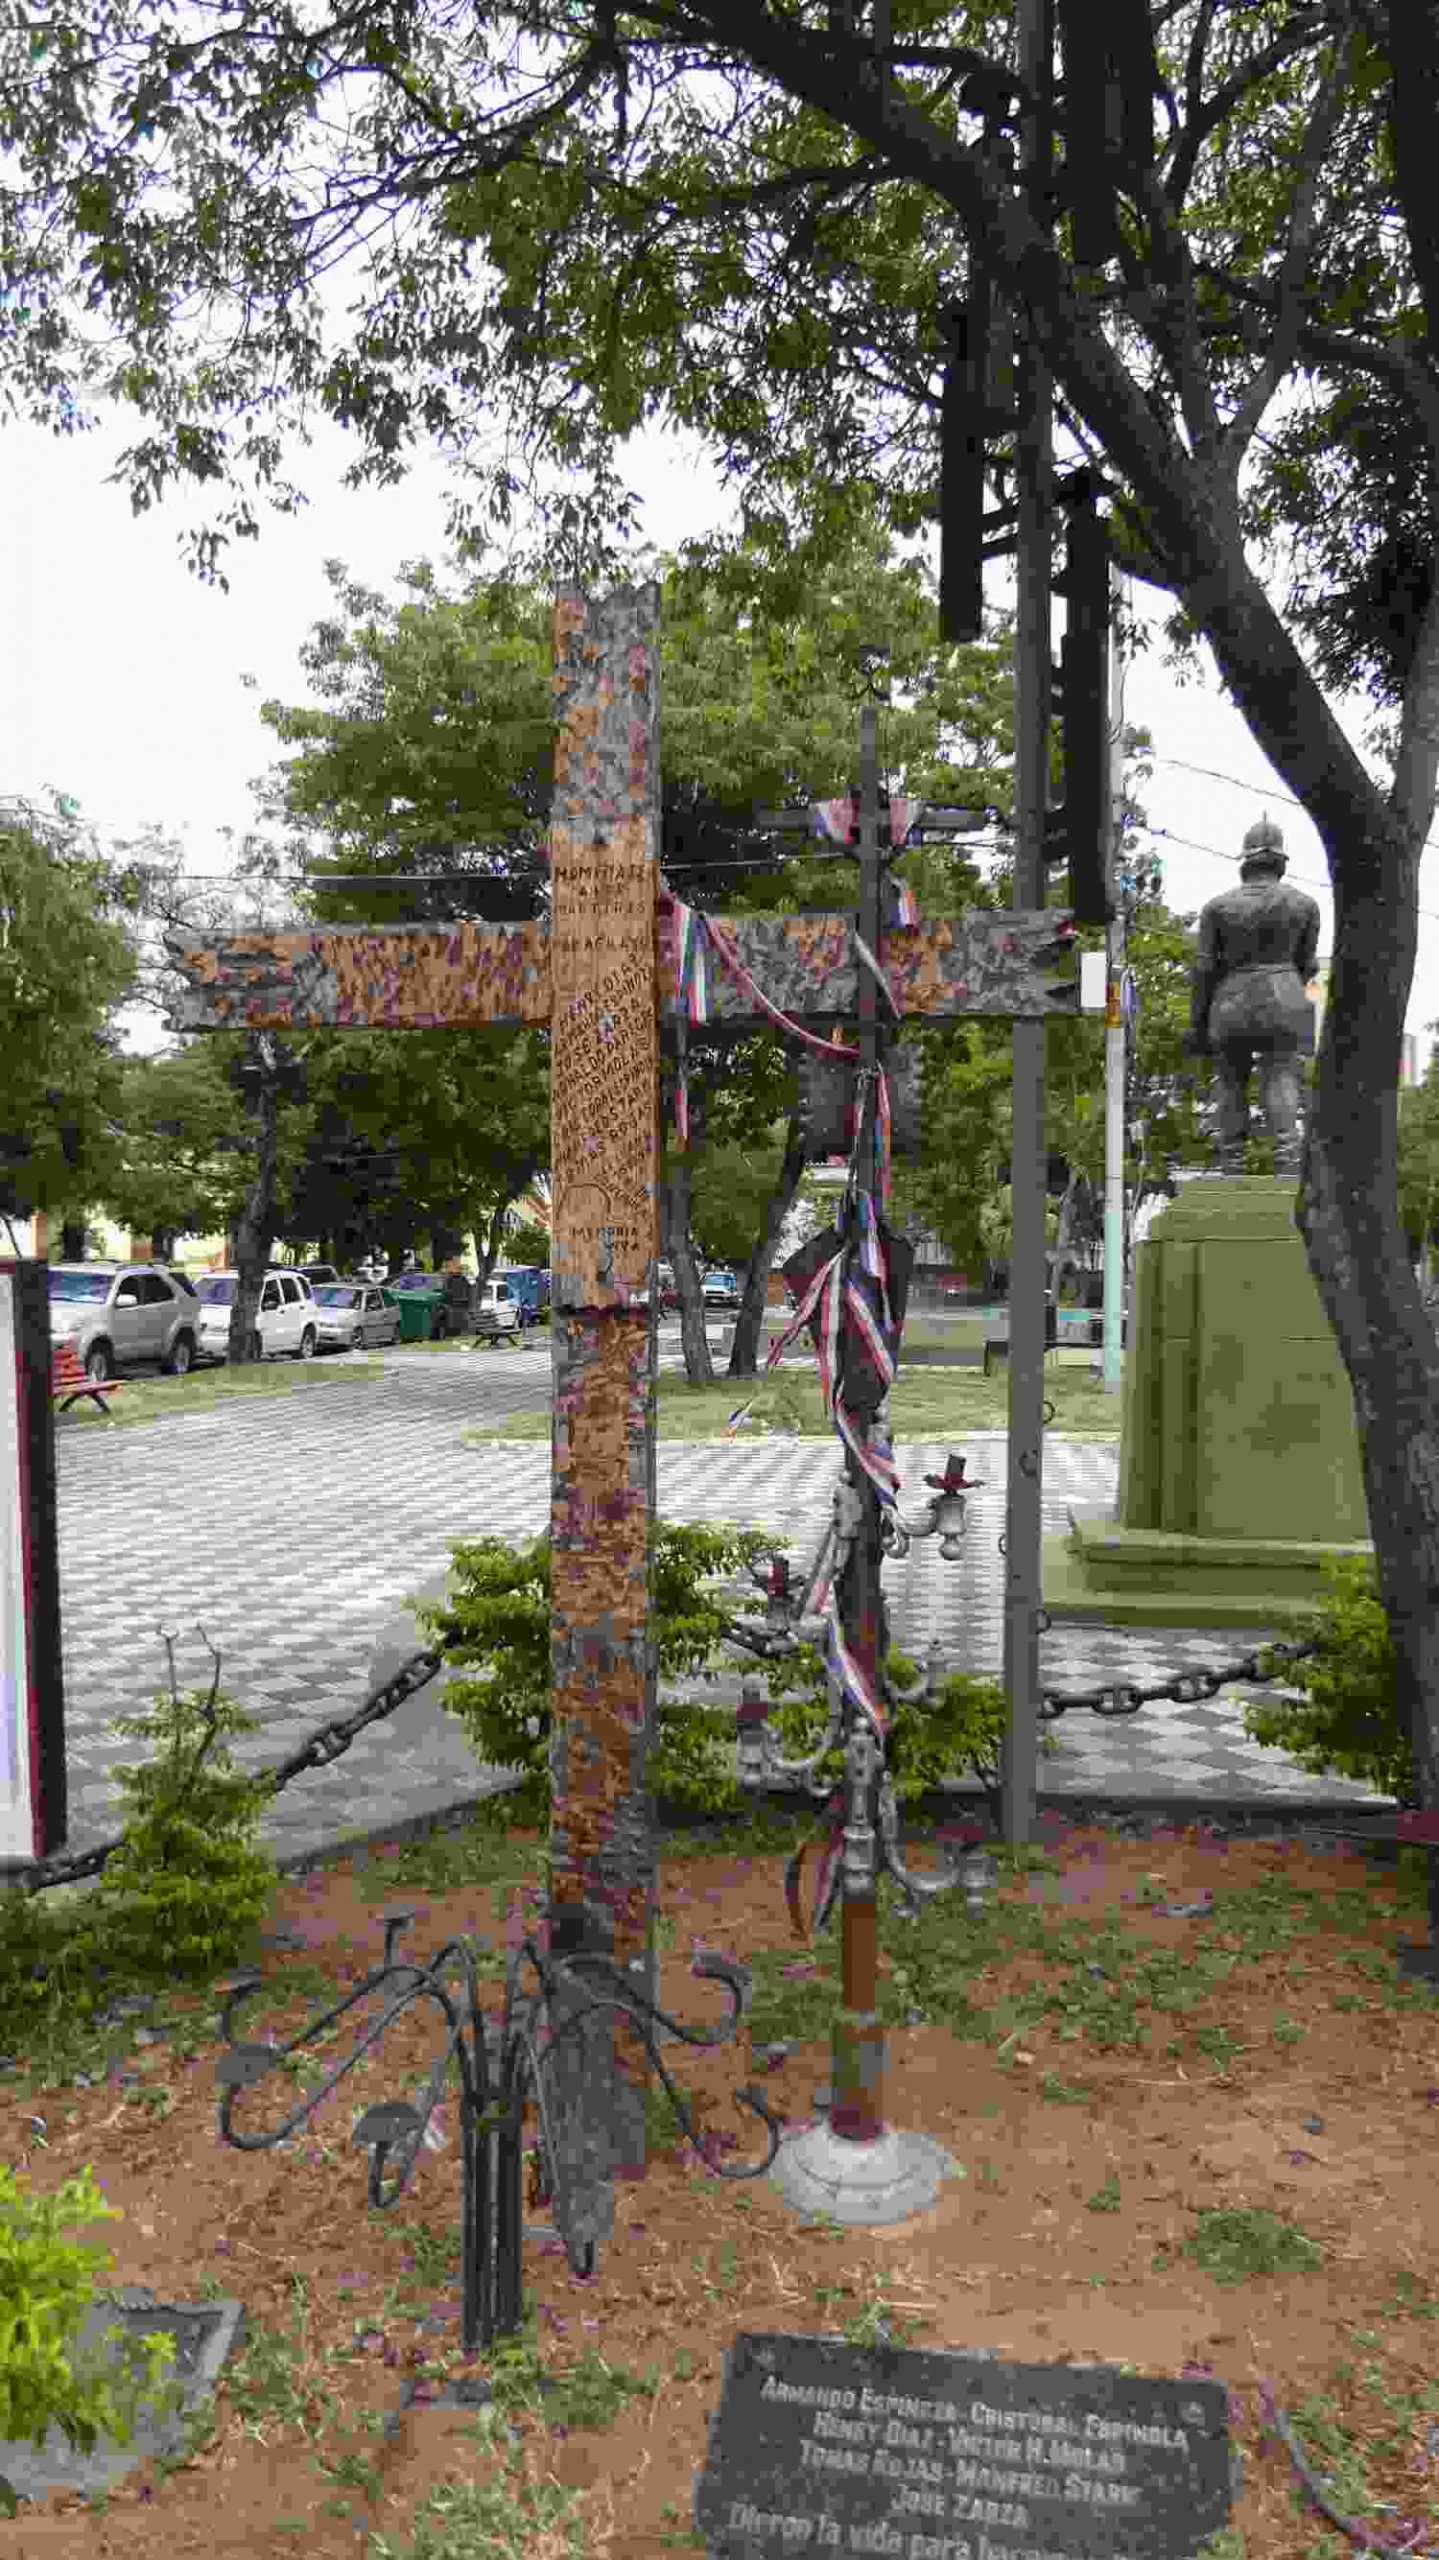 Crosses for the disappeared and killed people